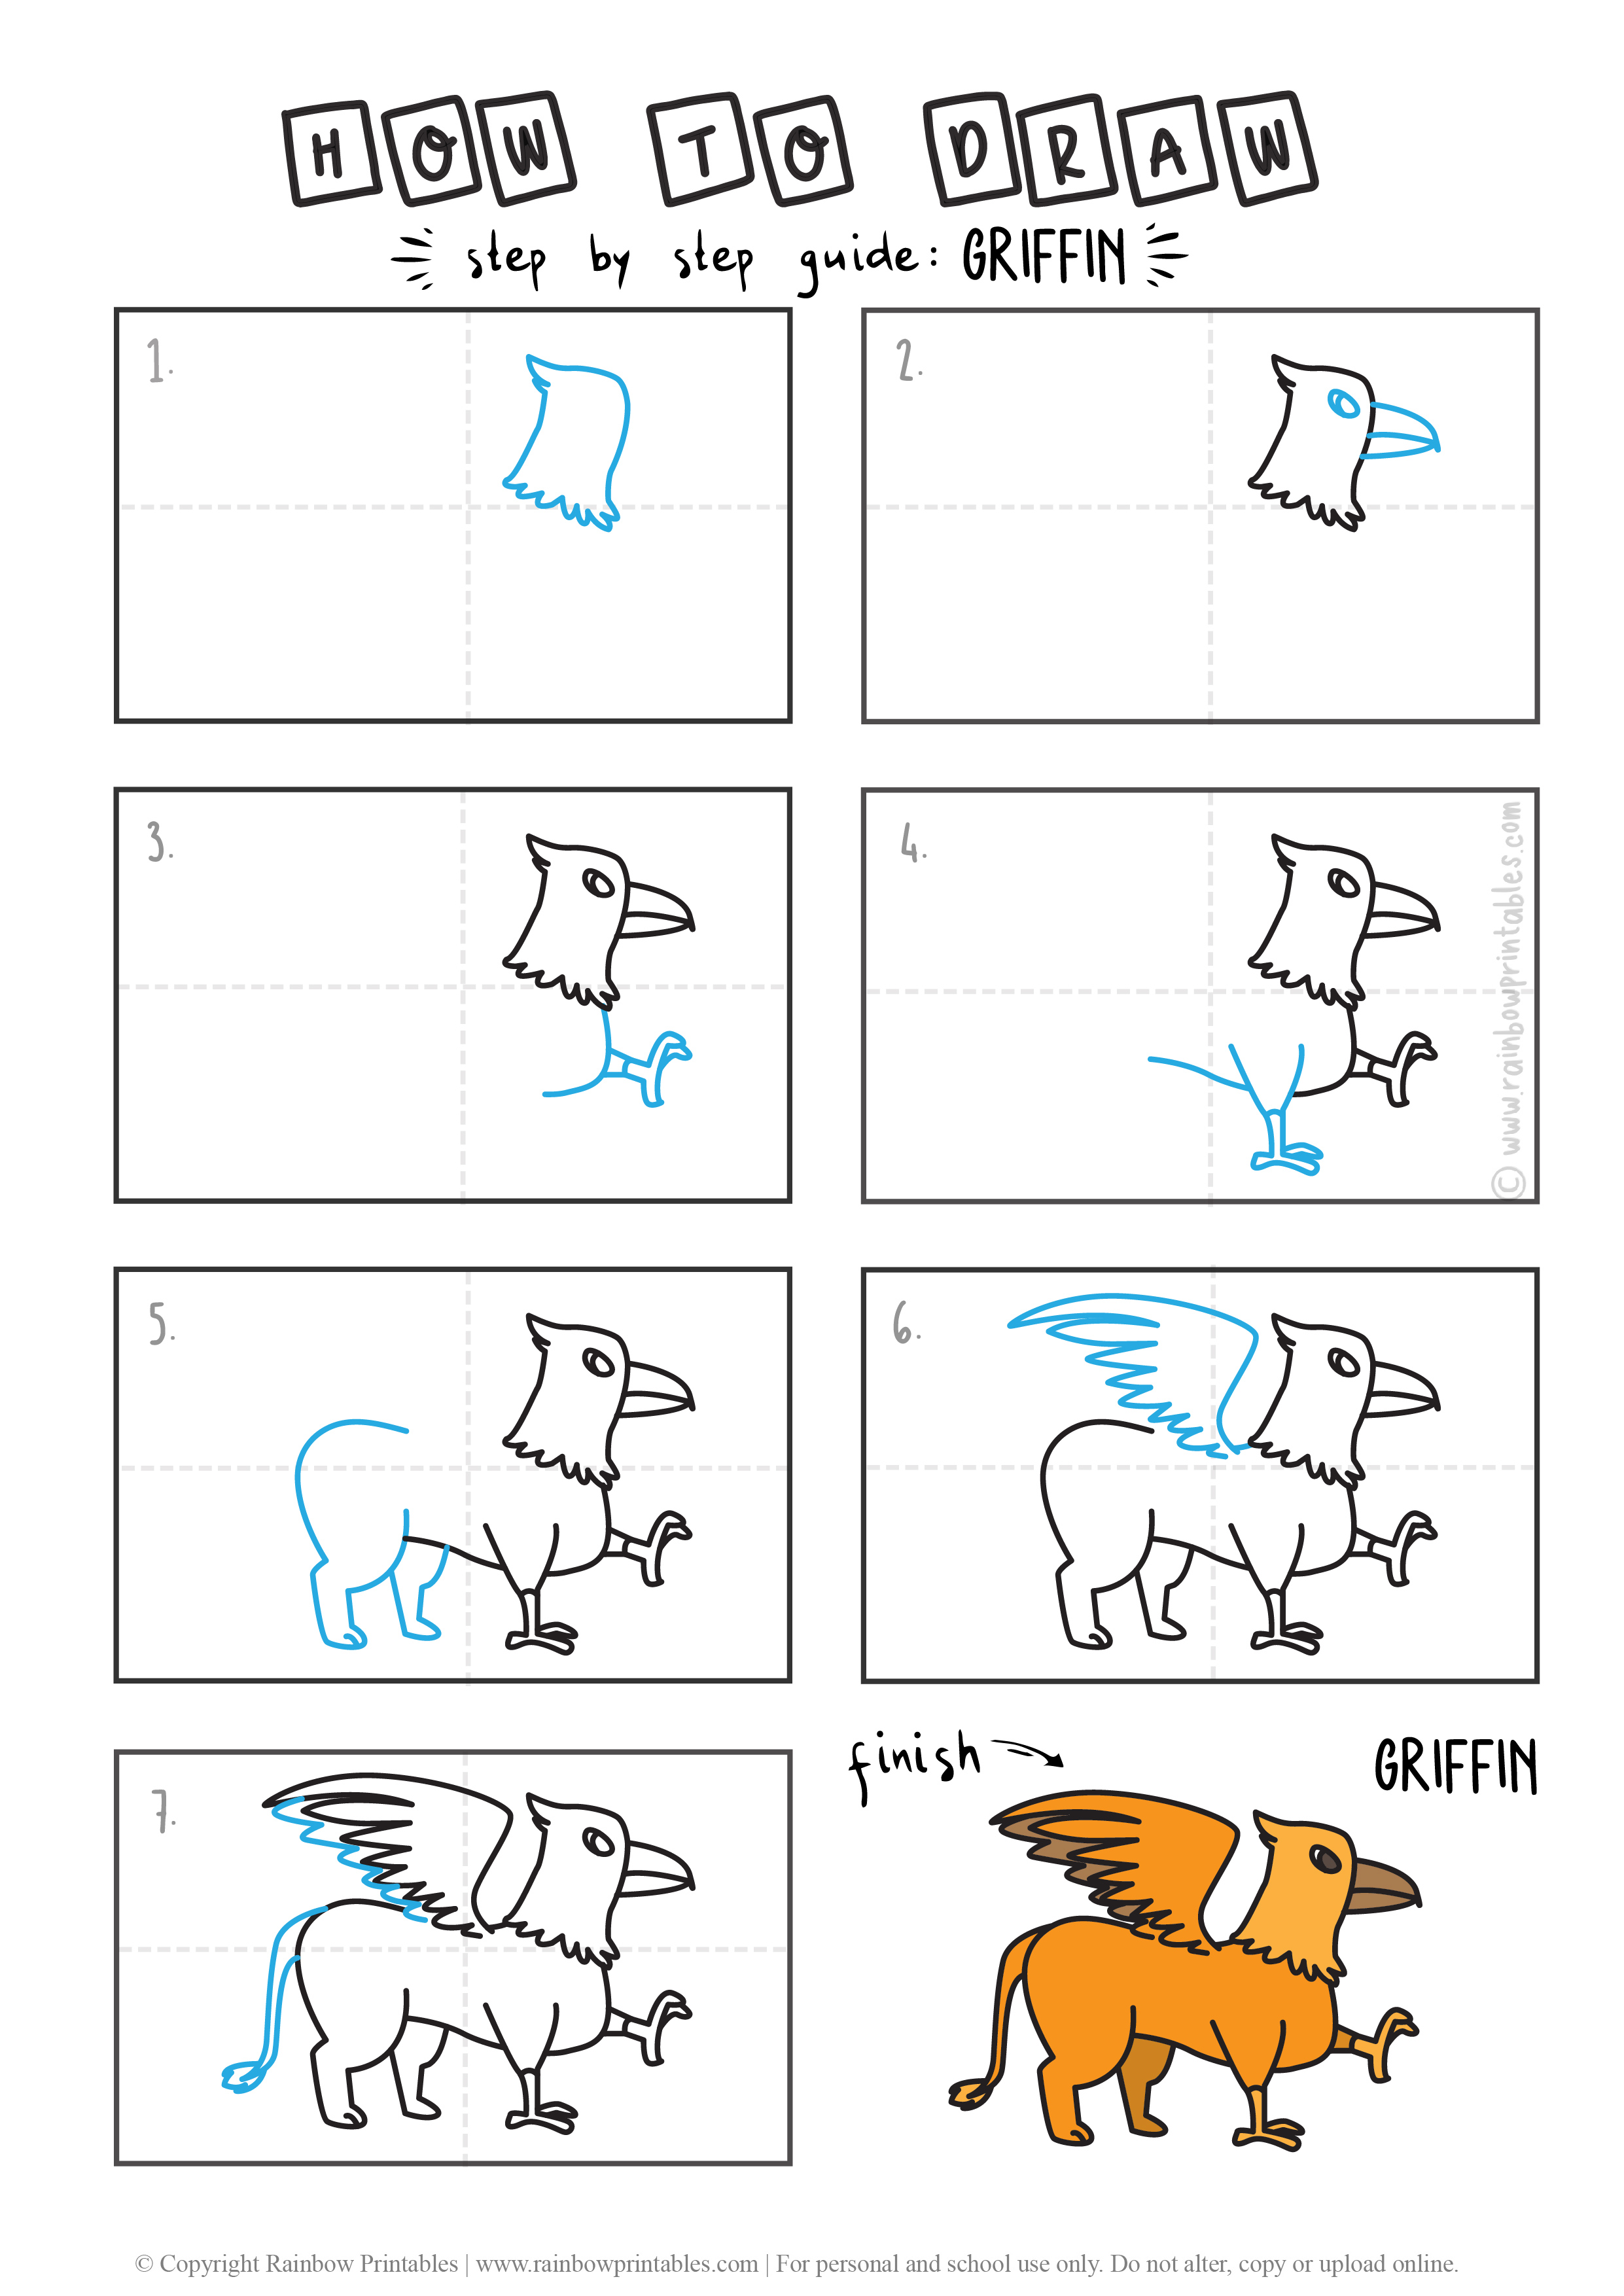 HOW TO DRAW A MYTH ANIMAL GRIFFIN GUIDE ILLUSTRATION STEP BY STEP EASY SIMPLE FOR KIDS